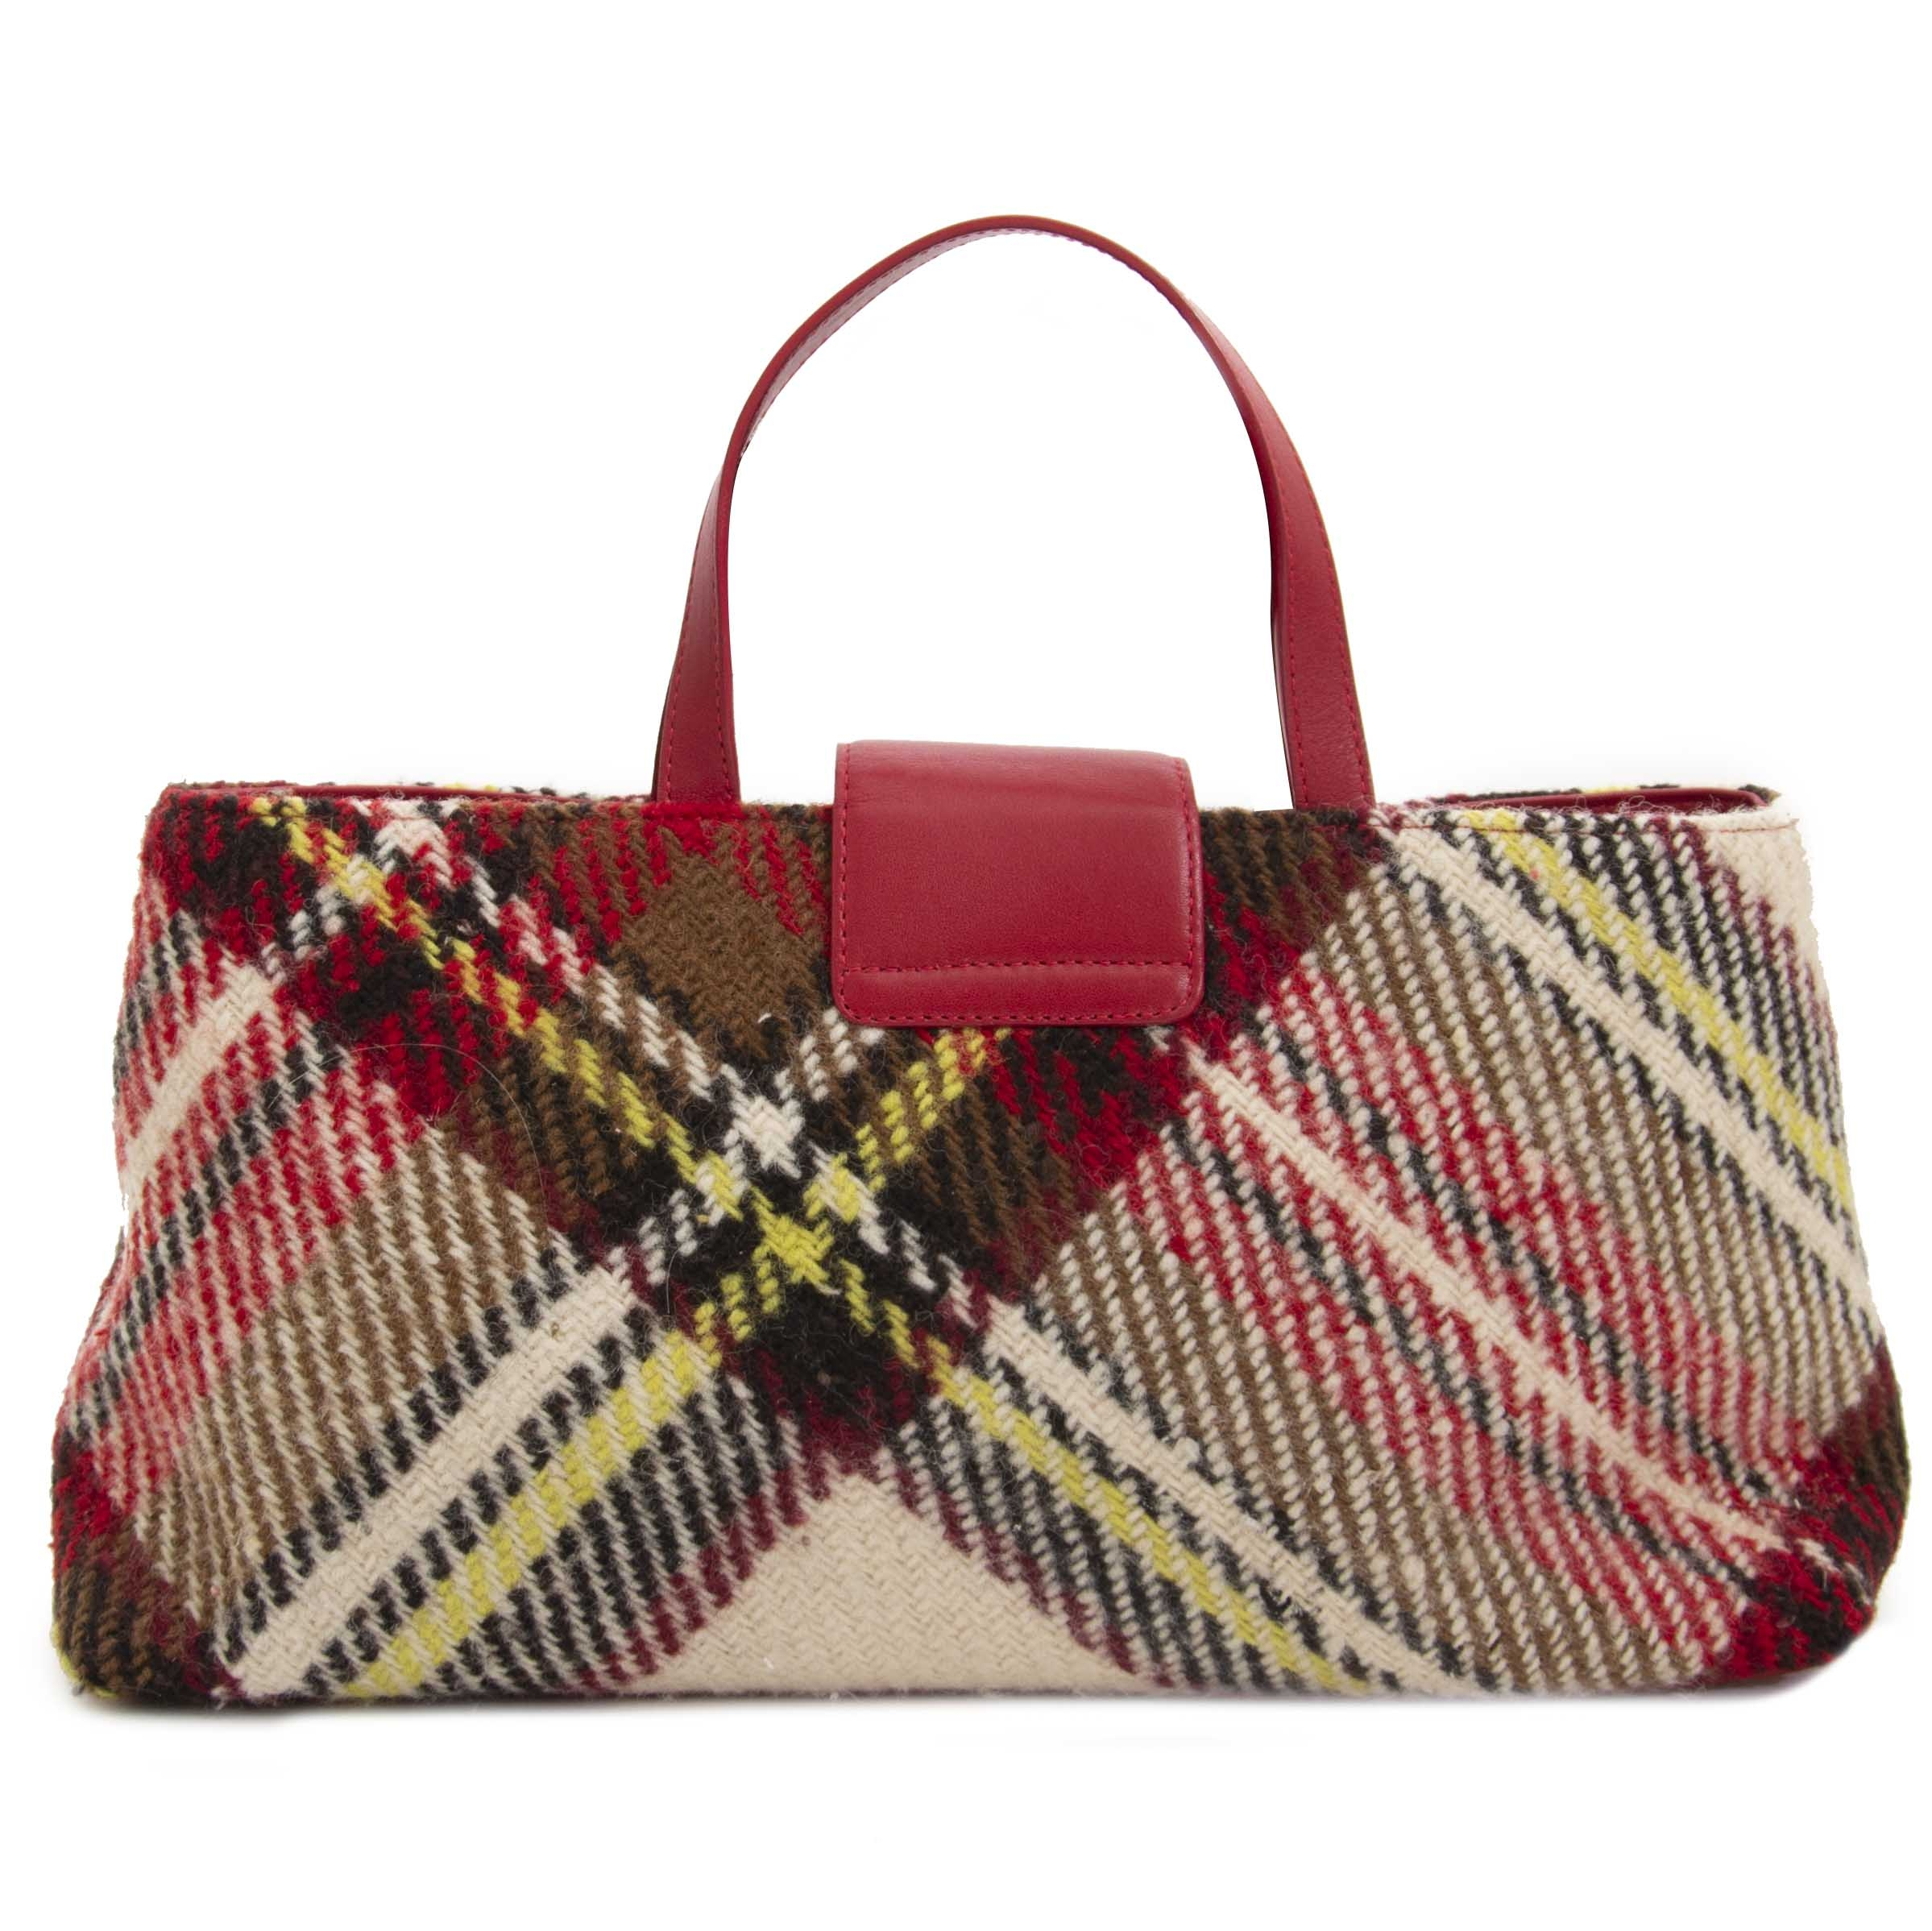 acheter en linge seconde main Burberry Check Wool Top Handle Bag